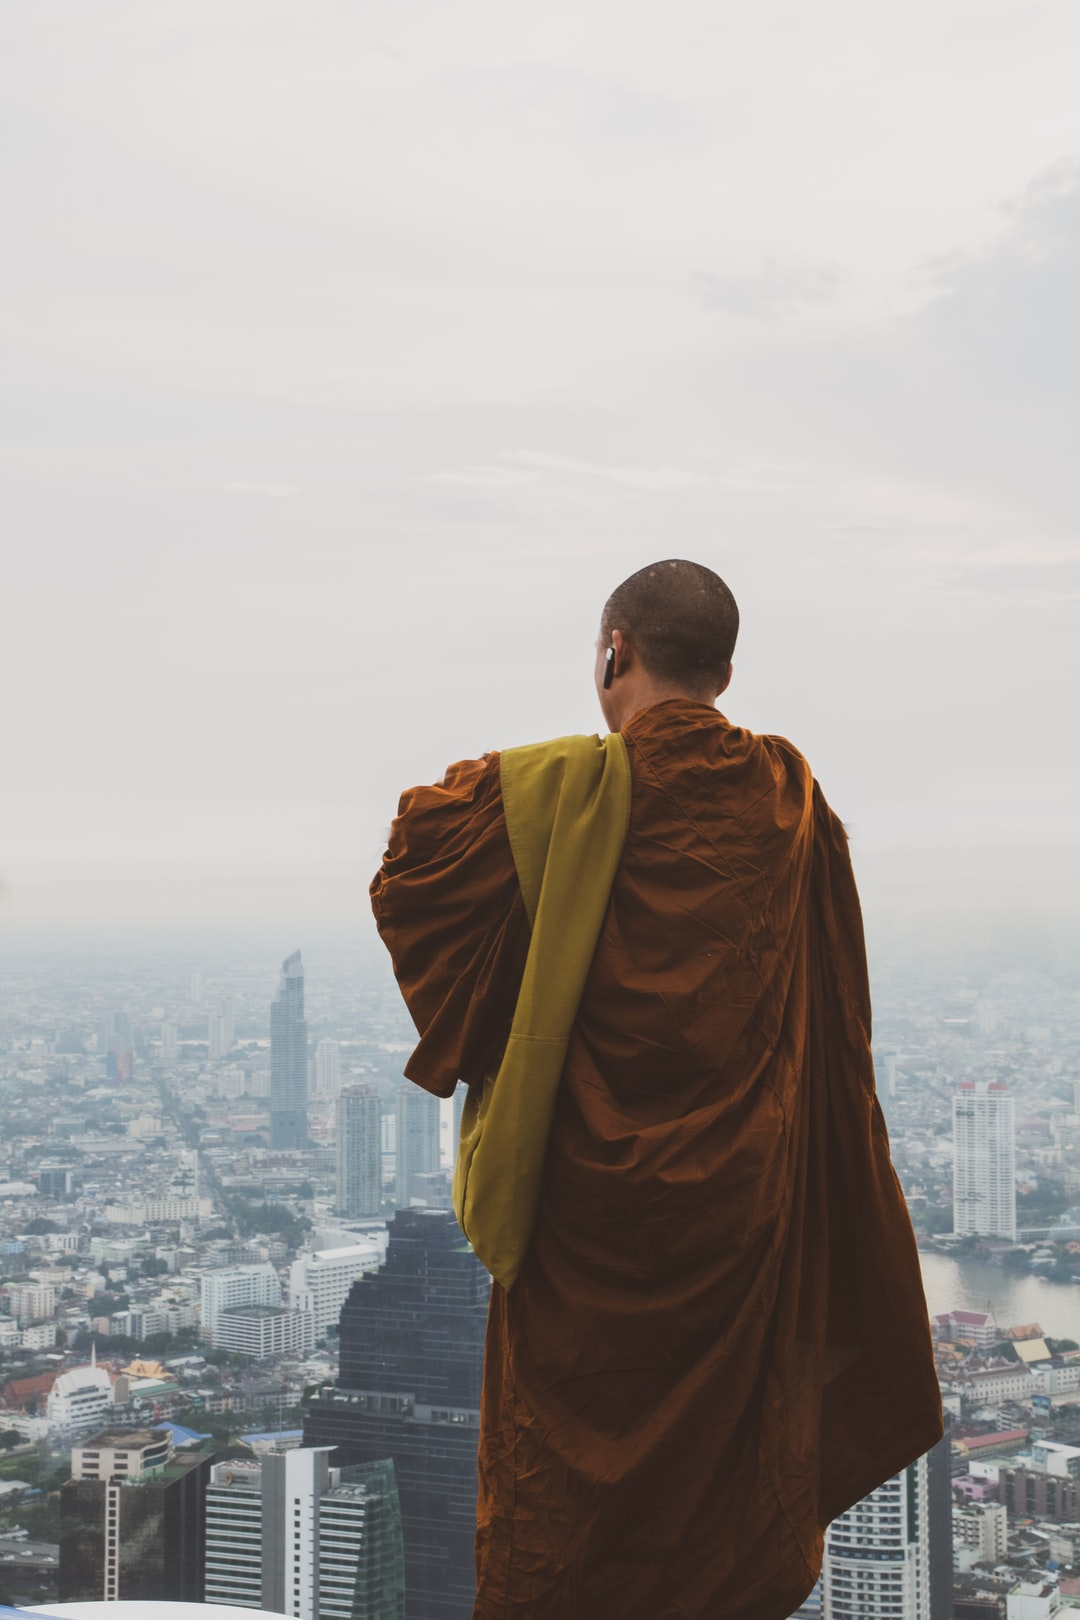 A monk overlooking the city of Bangkok